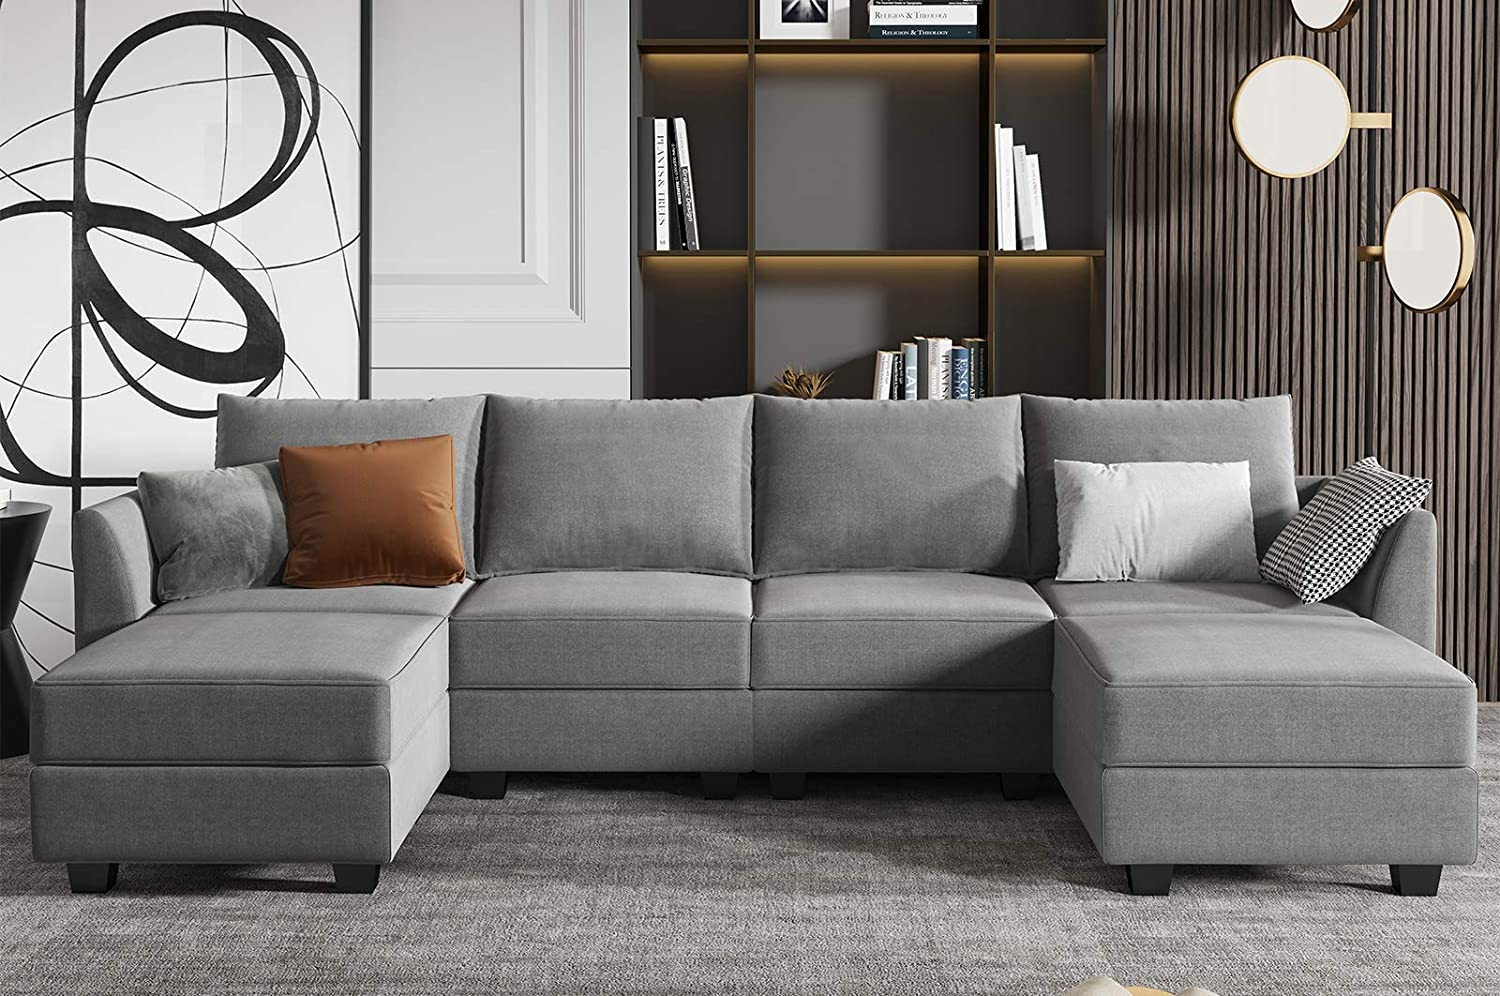 10 Best sectional sofa under $1000